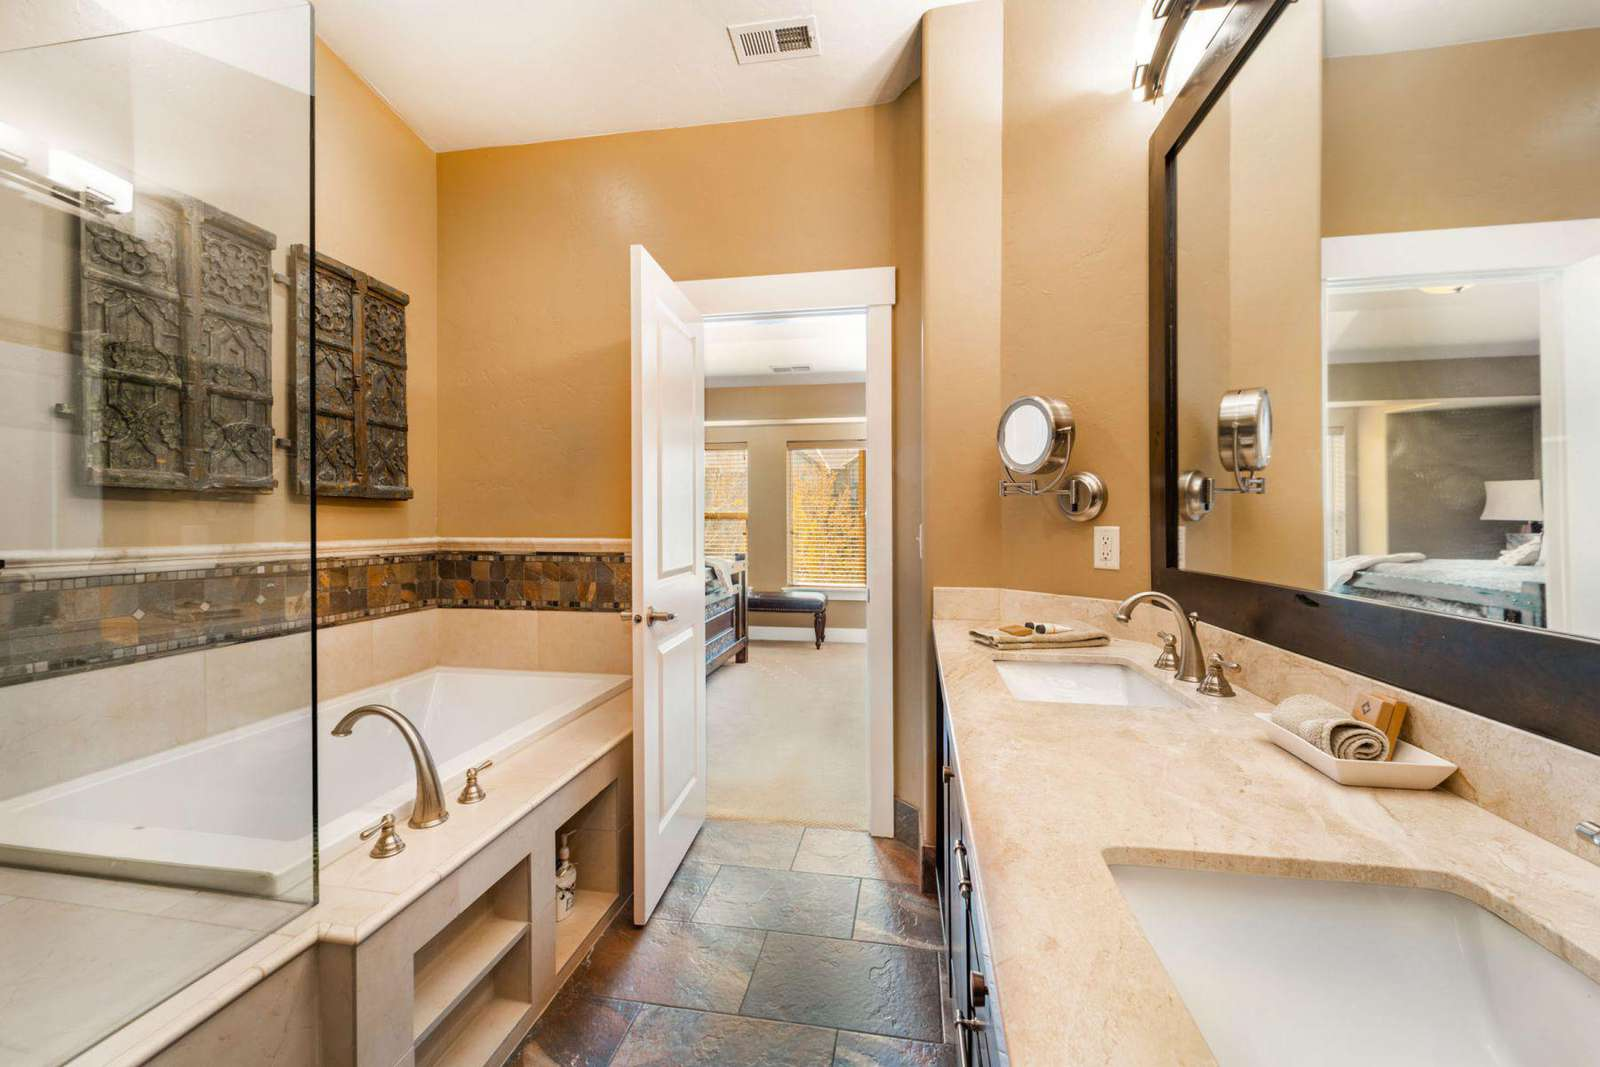 Walk-in shower separate from tub